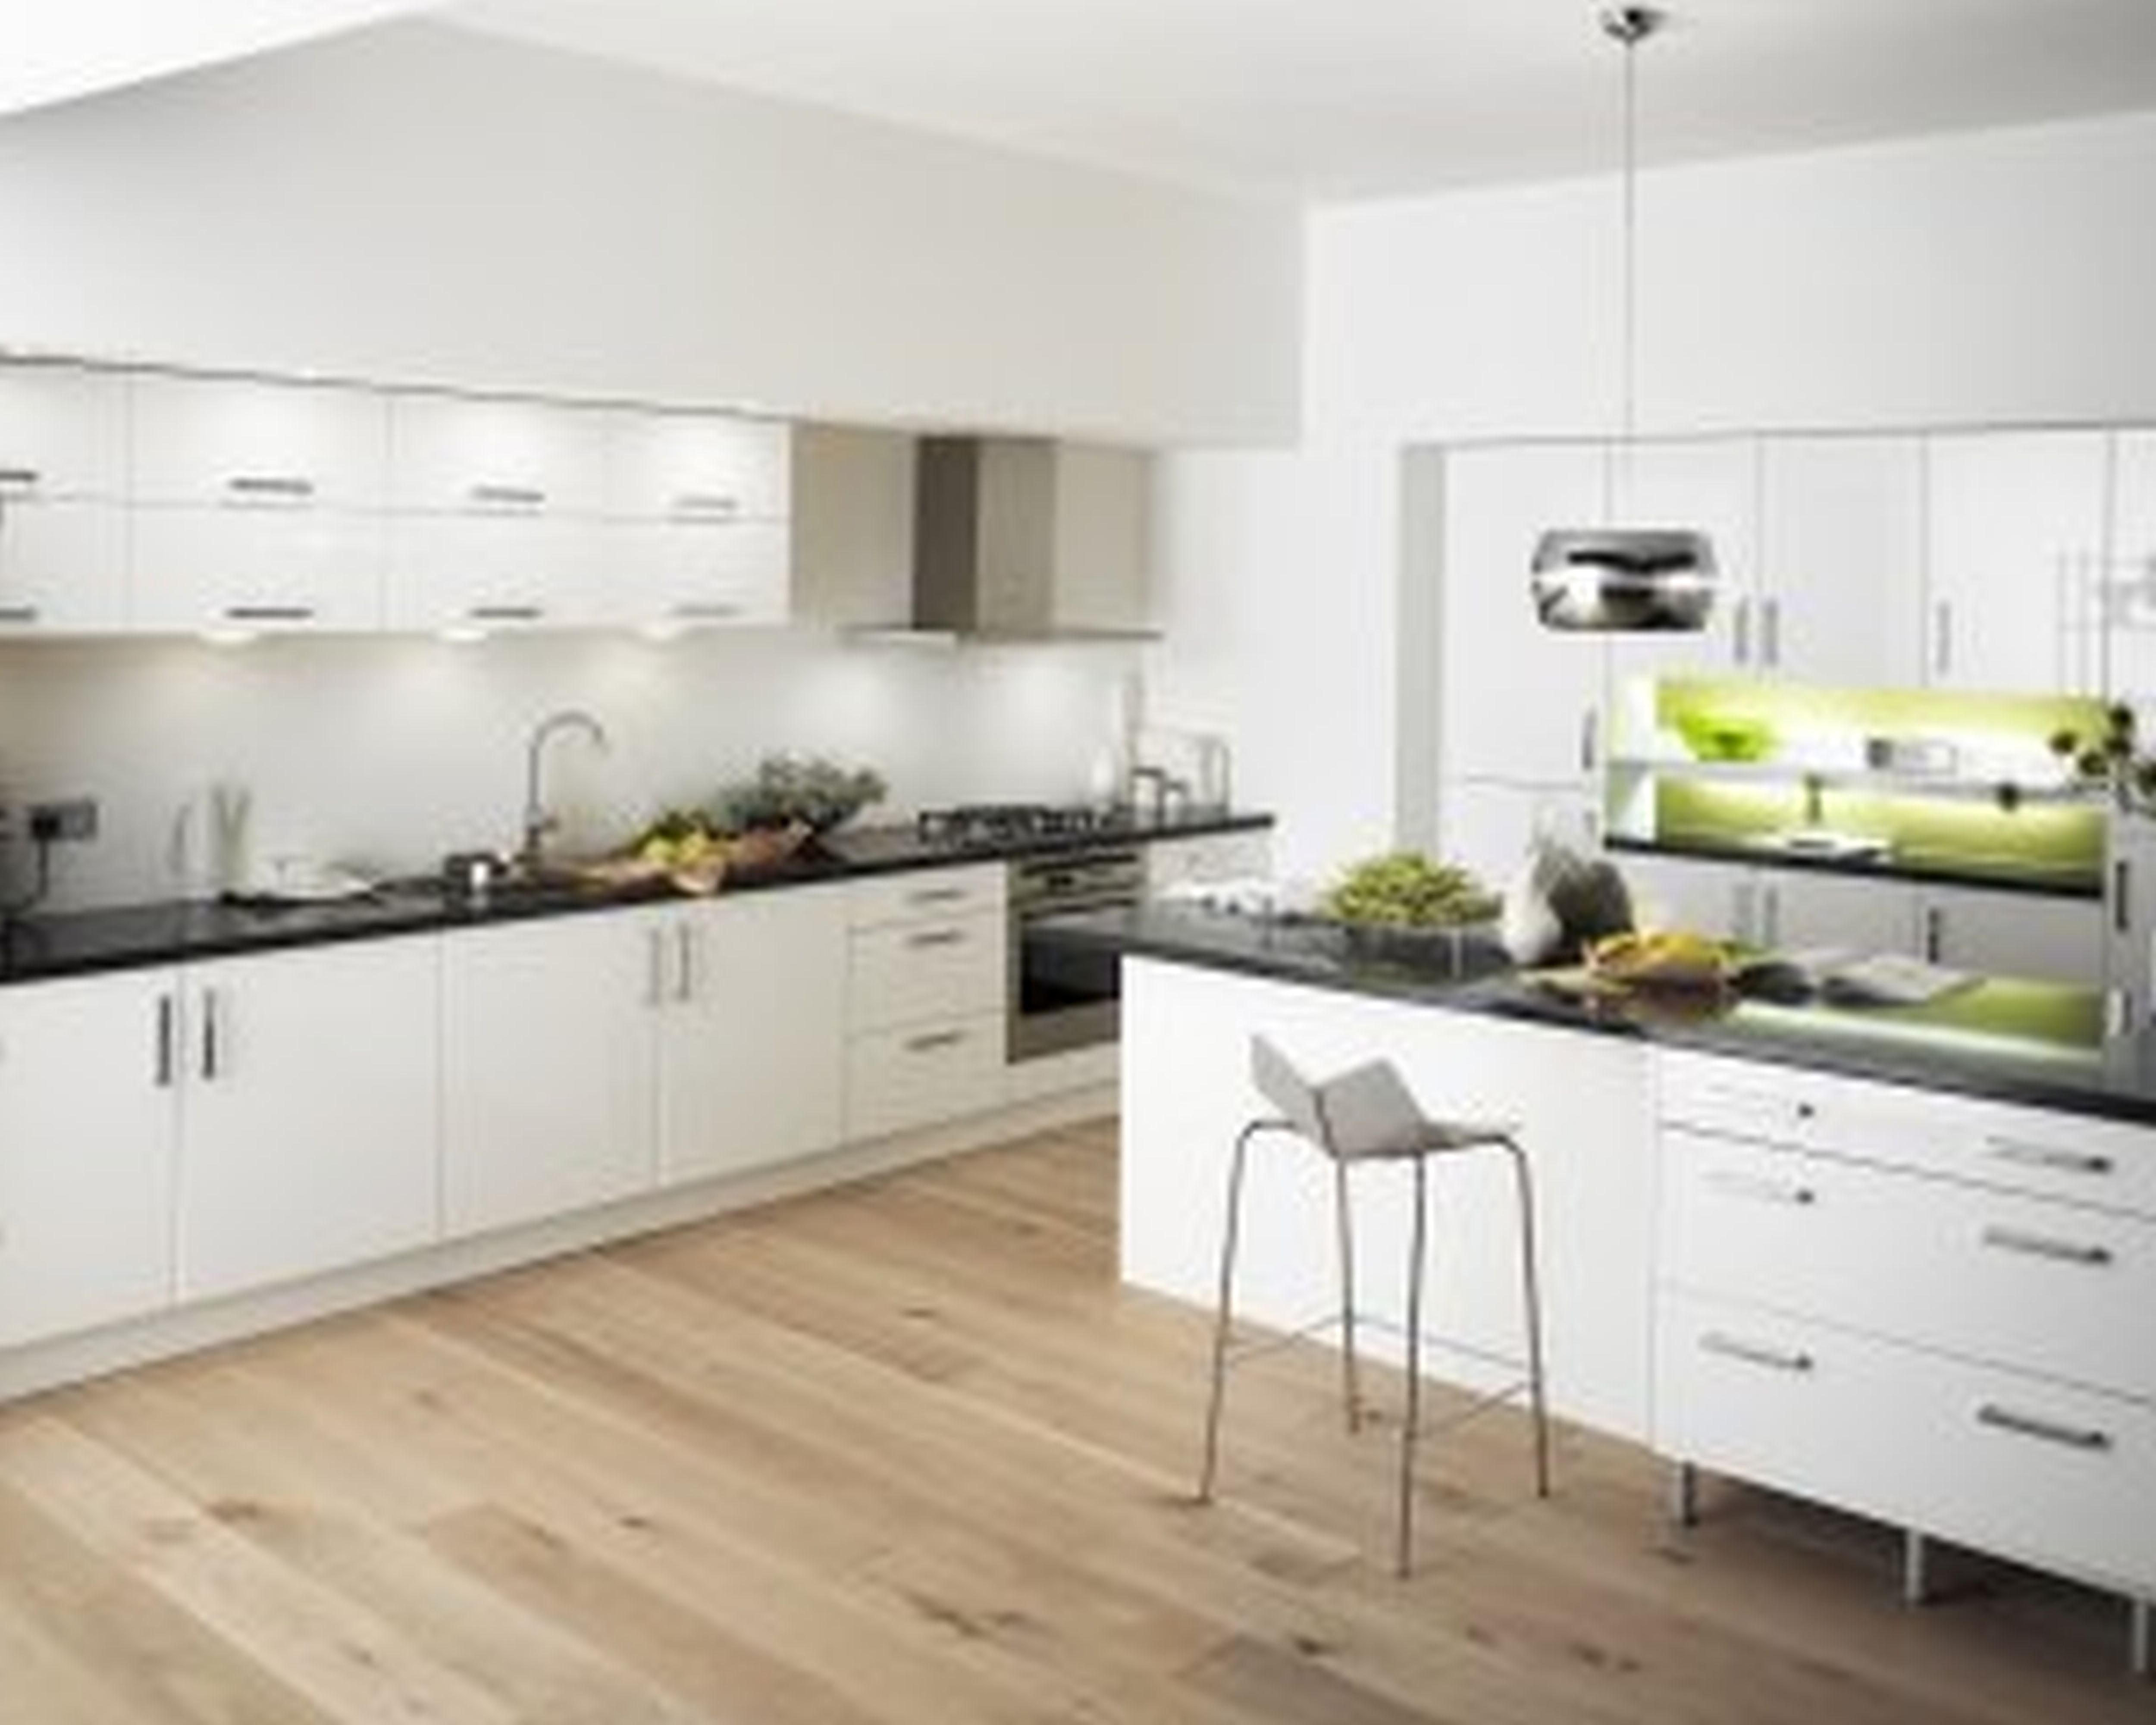 Modern White Kitchen Cabinet Remodel Small Kitchen White Cabinets Awesome Charming The And Modern Design Ideas Kitchens With Resolution Remodel Pictures